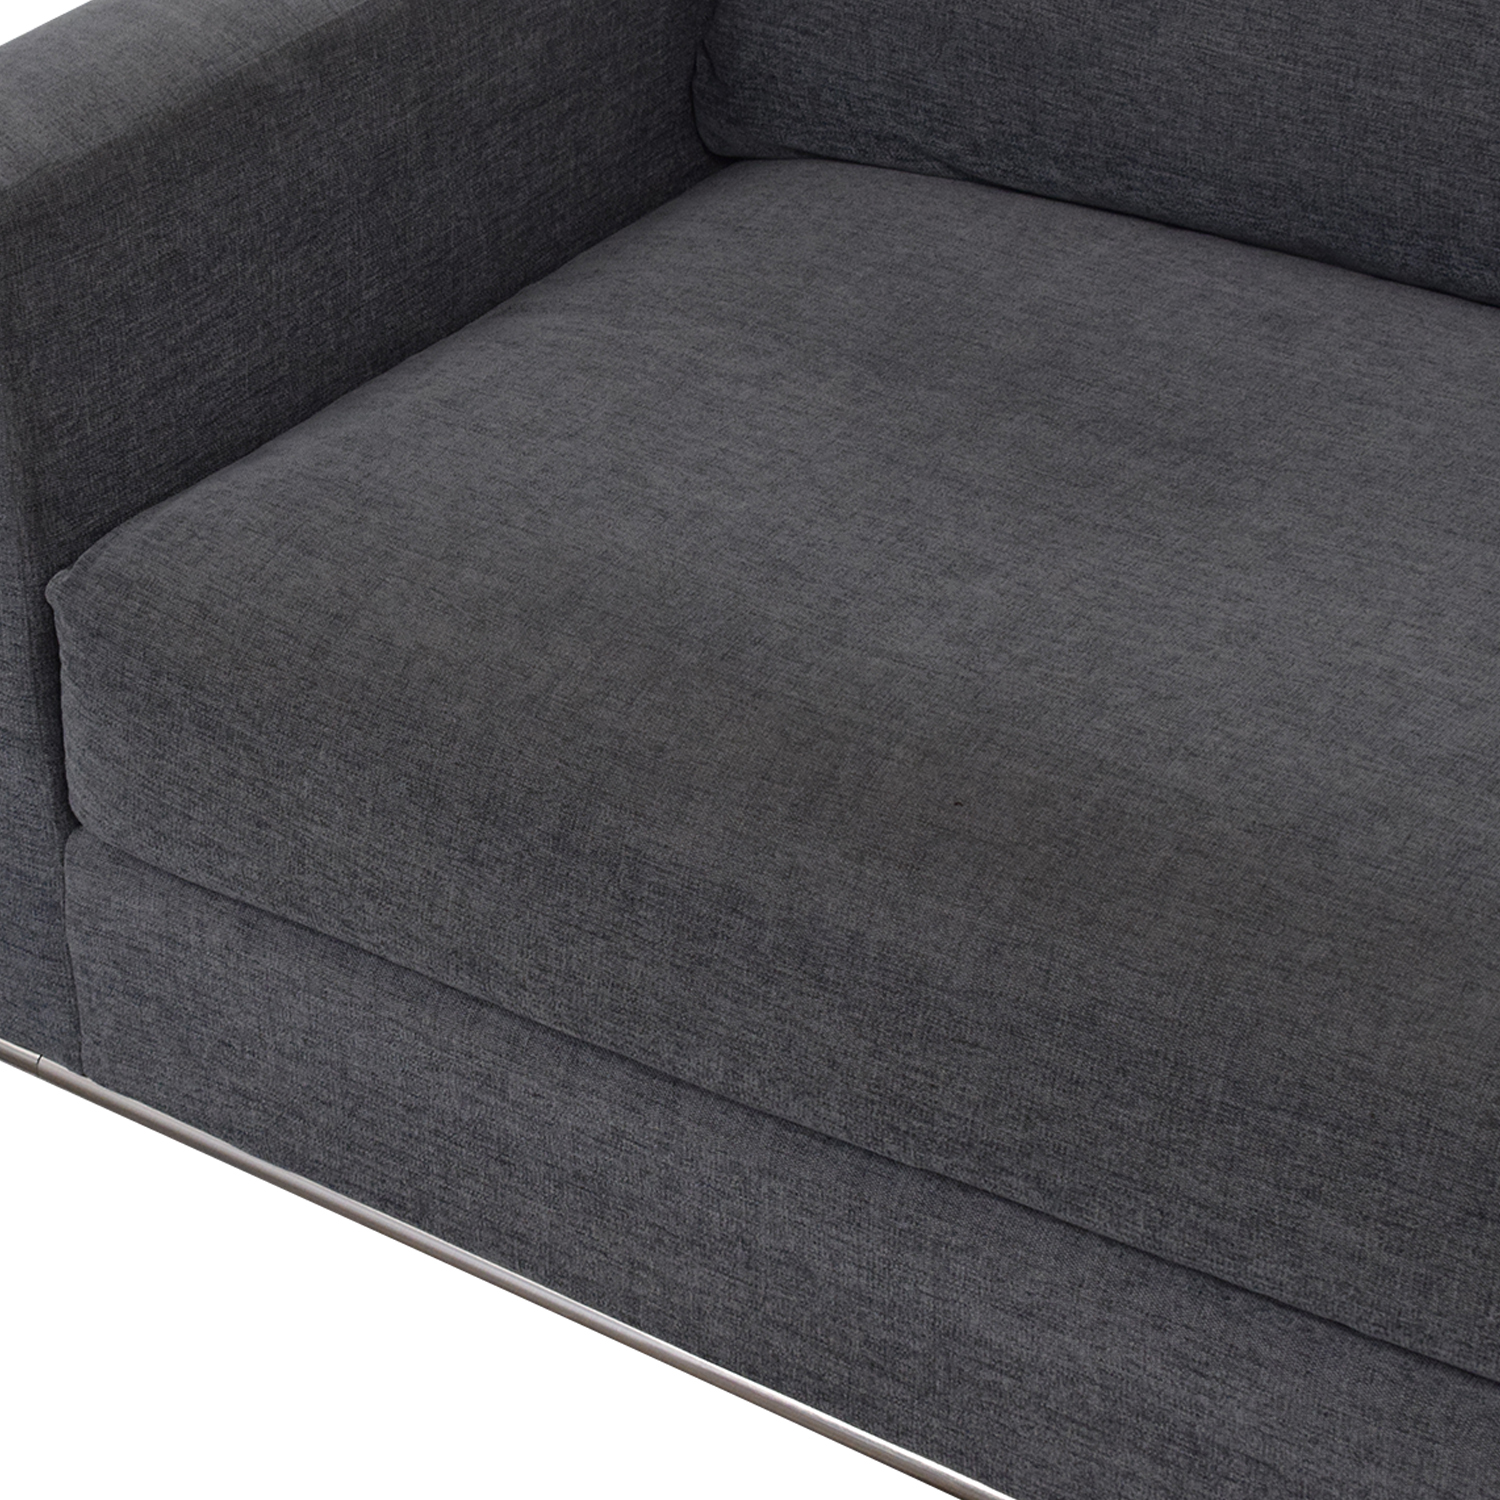 shop Weiman Sectional Sofa with Chaise Weiman